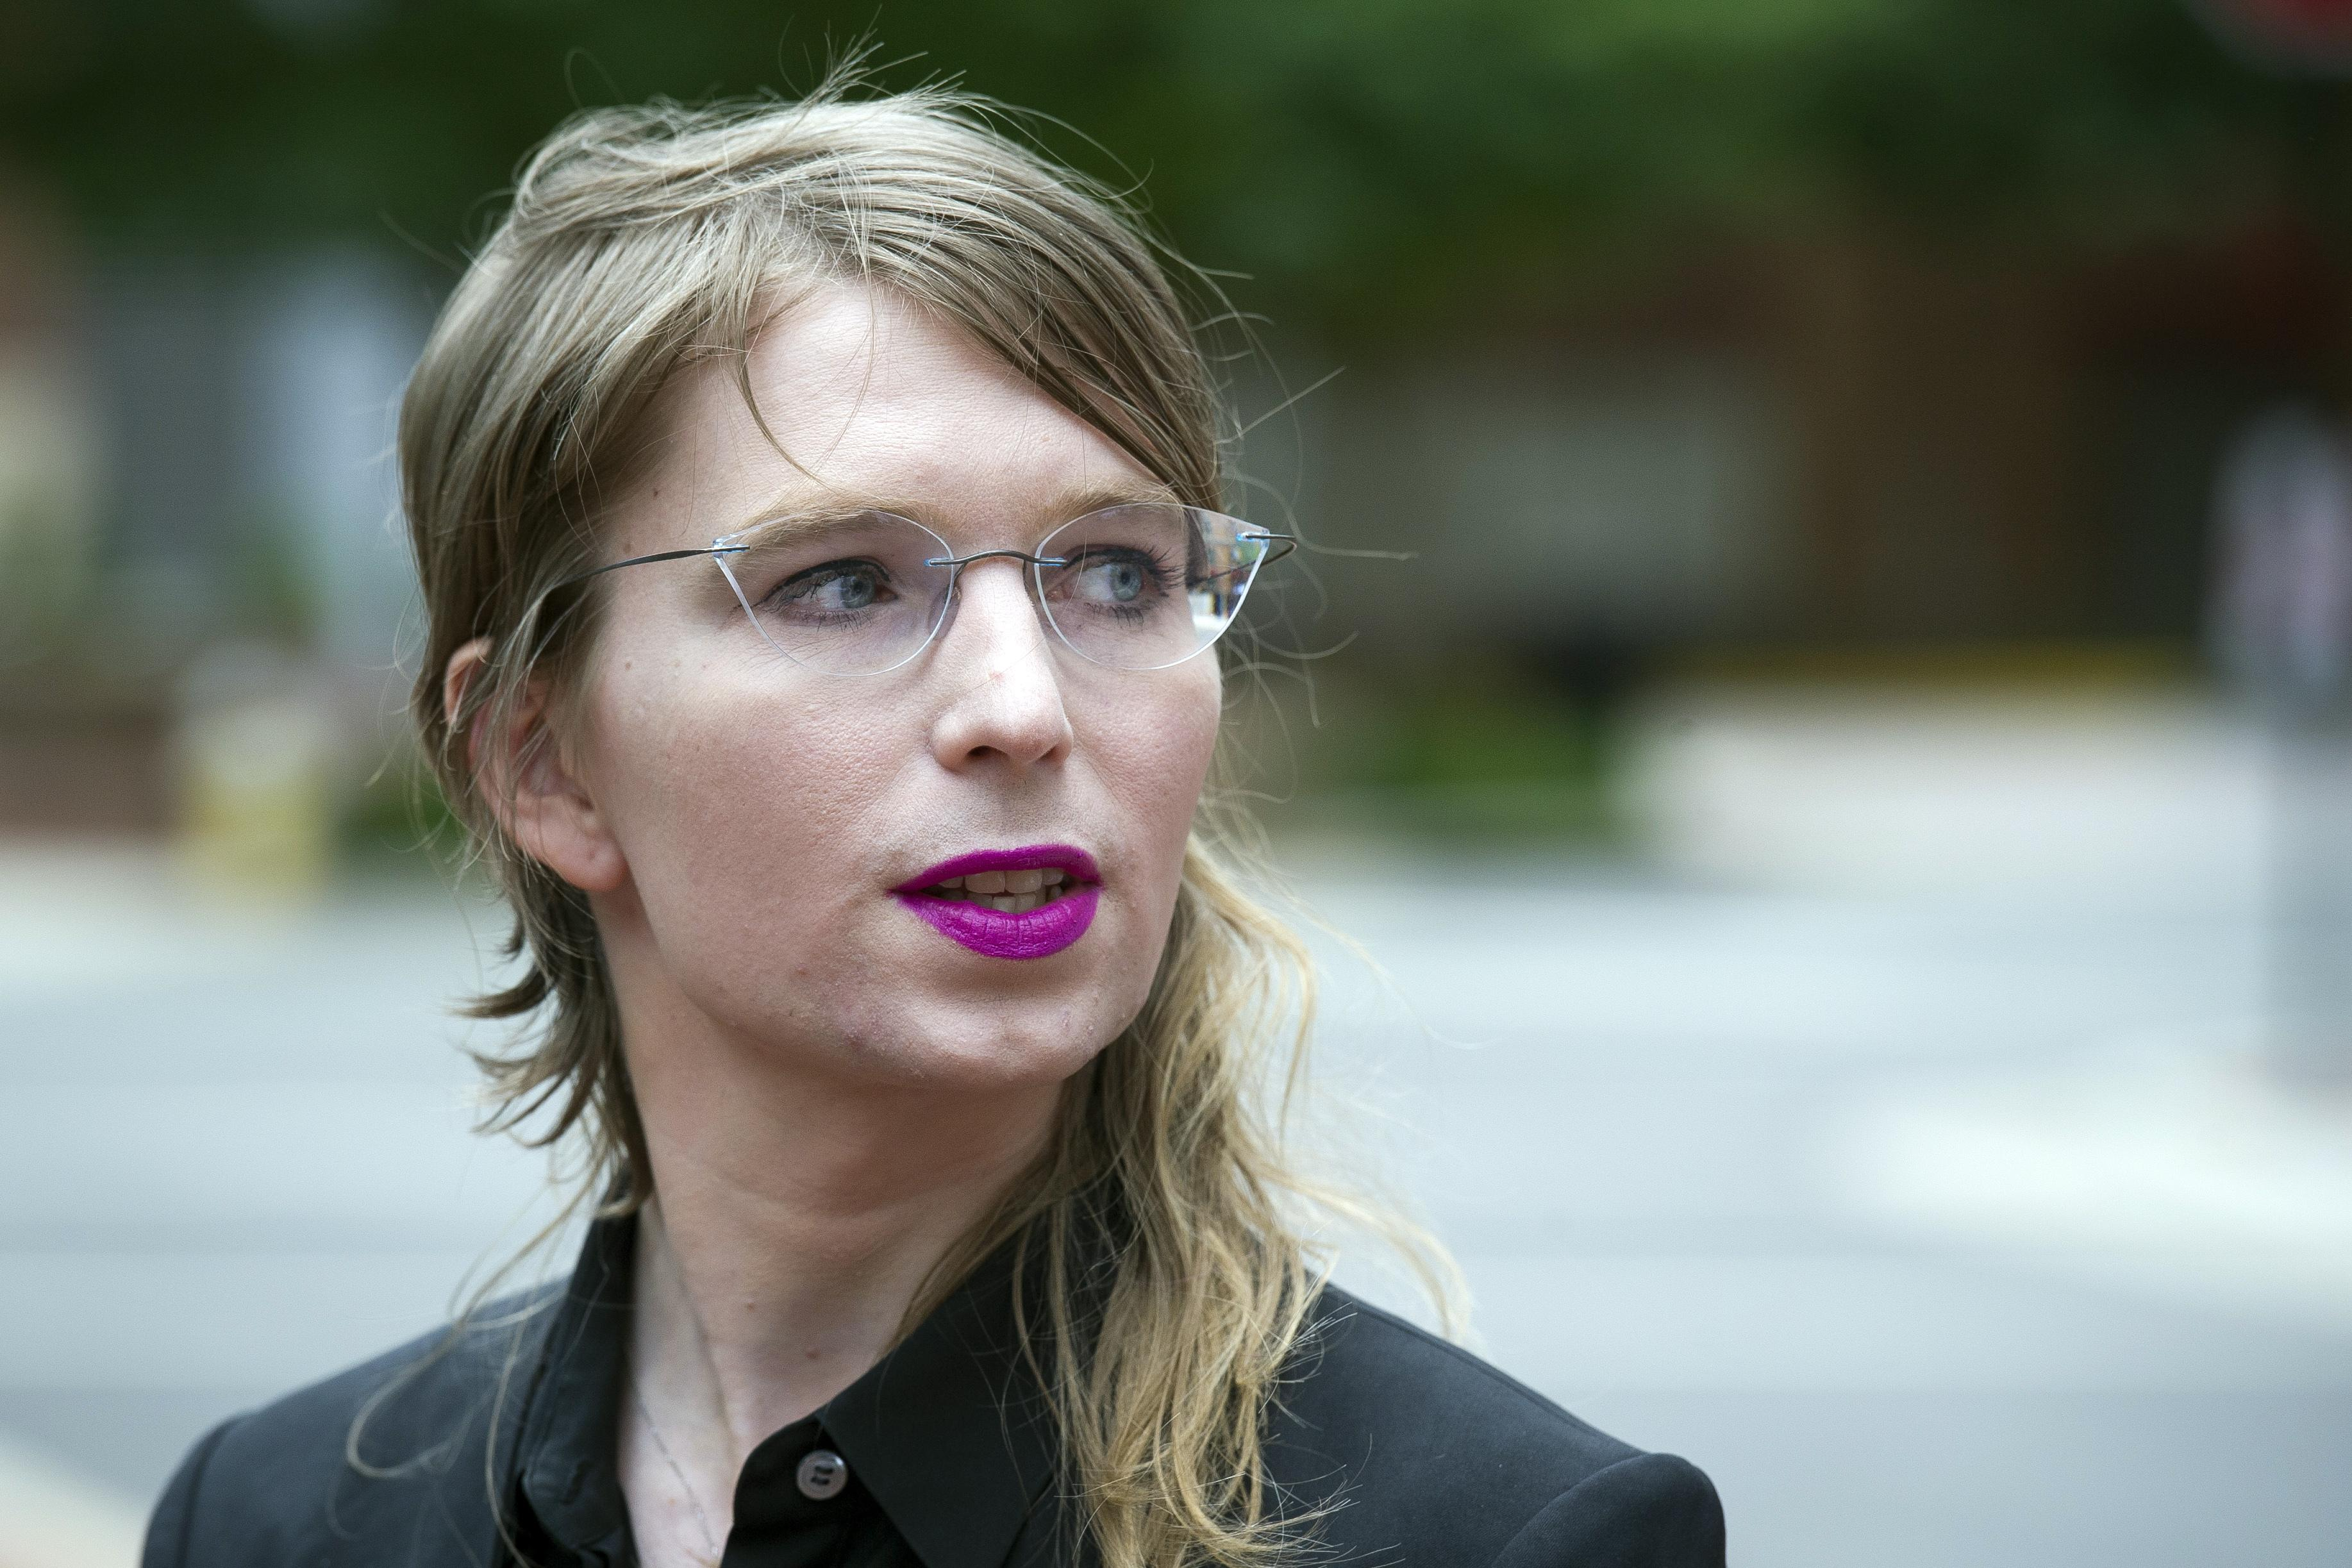 Fines double for Chelsea Manning, jailed WikiLeaks source found in con